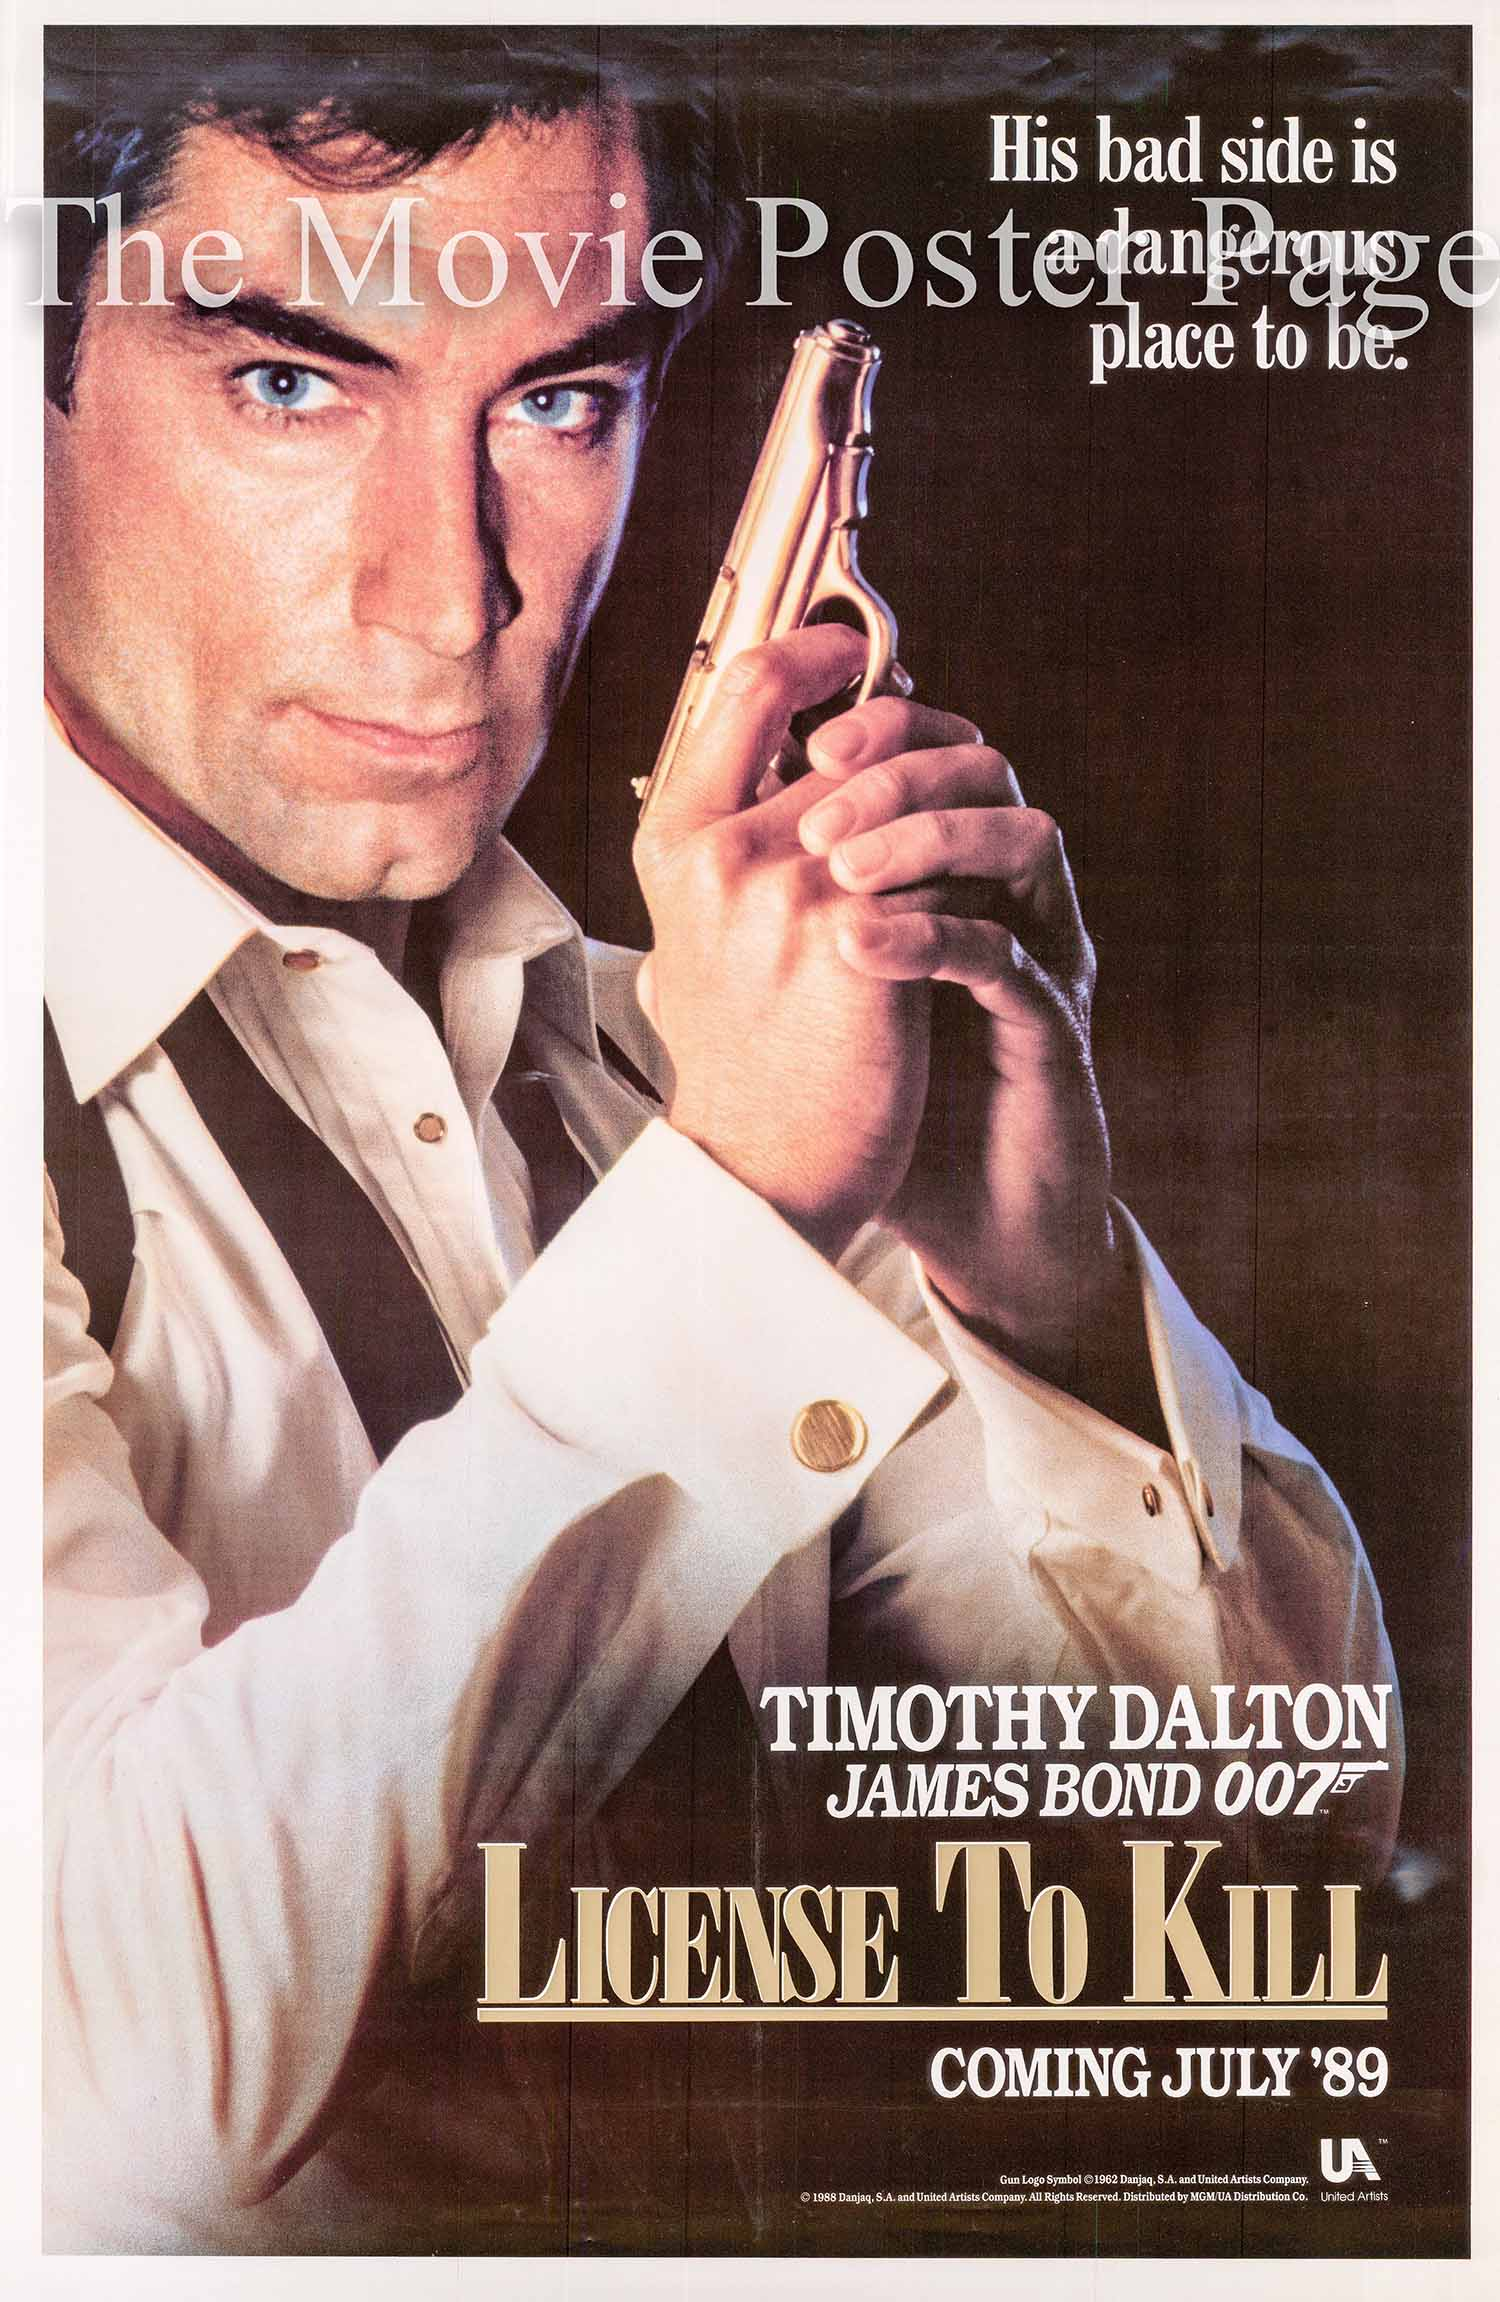 This is a US advance promotional poster for the 1989 John Glen film License to Kill starring Timonthy Dalton.